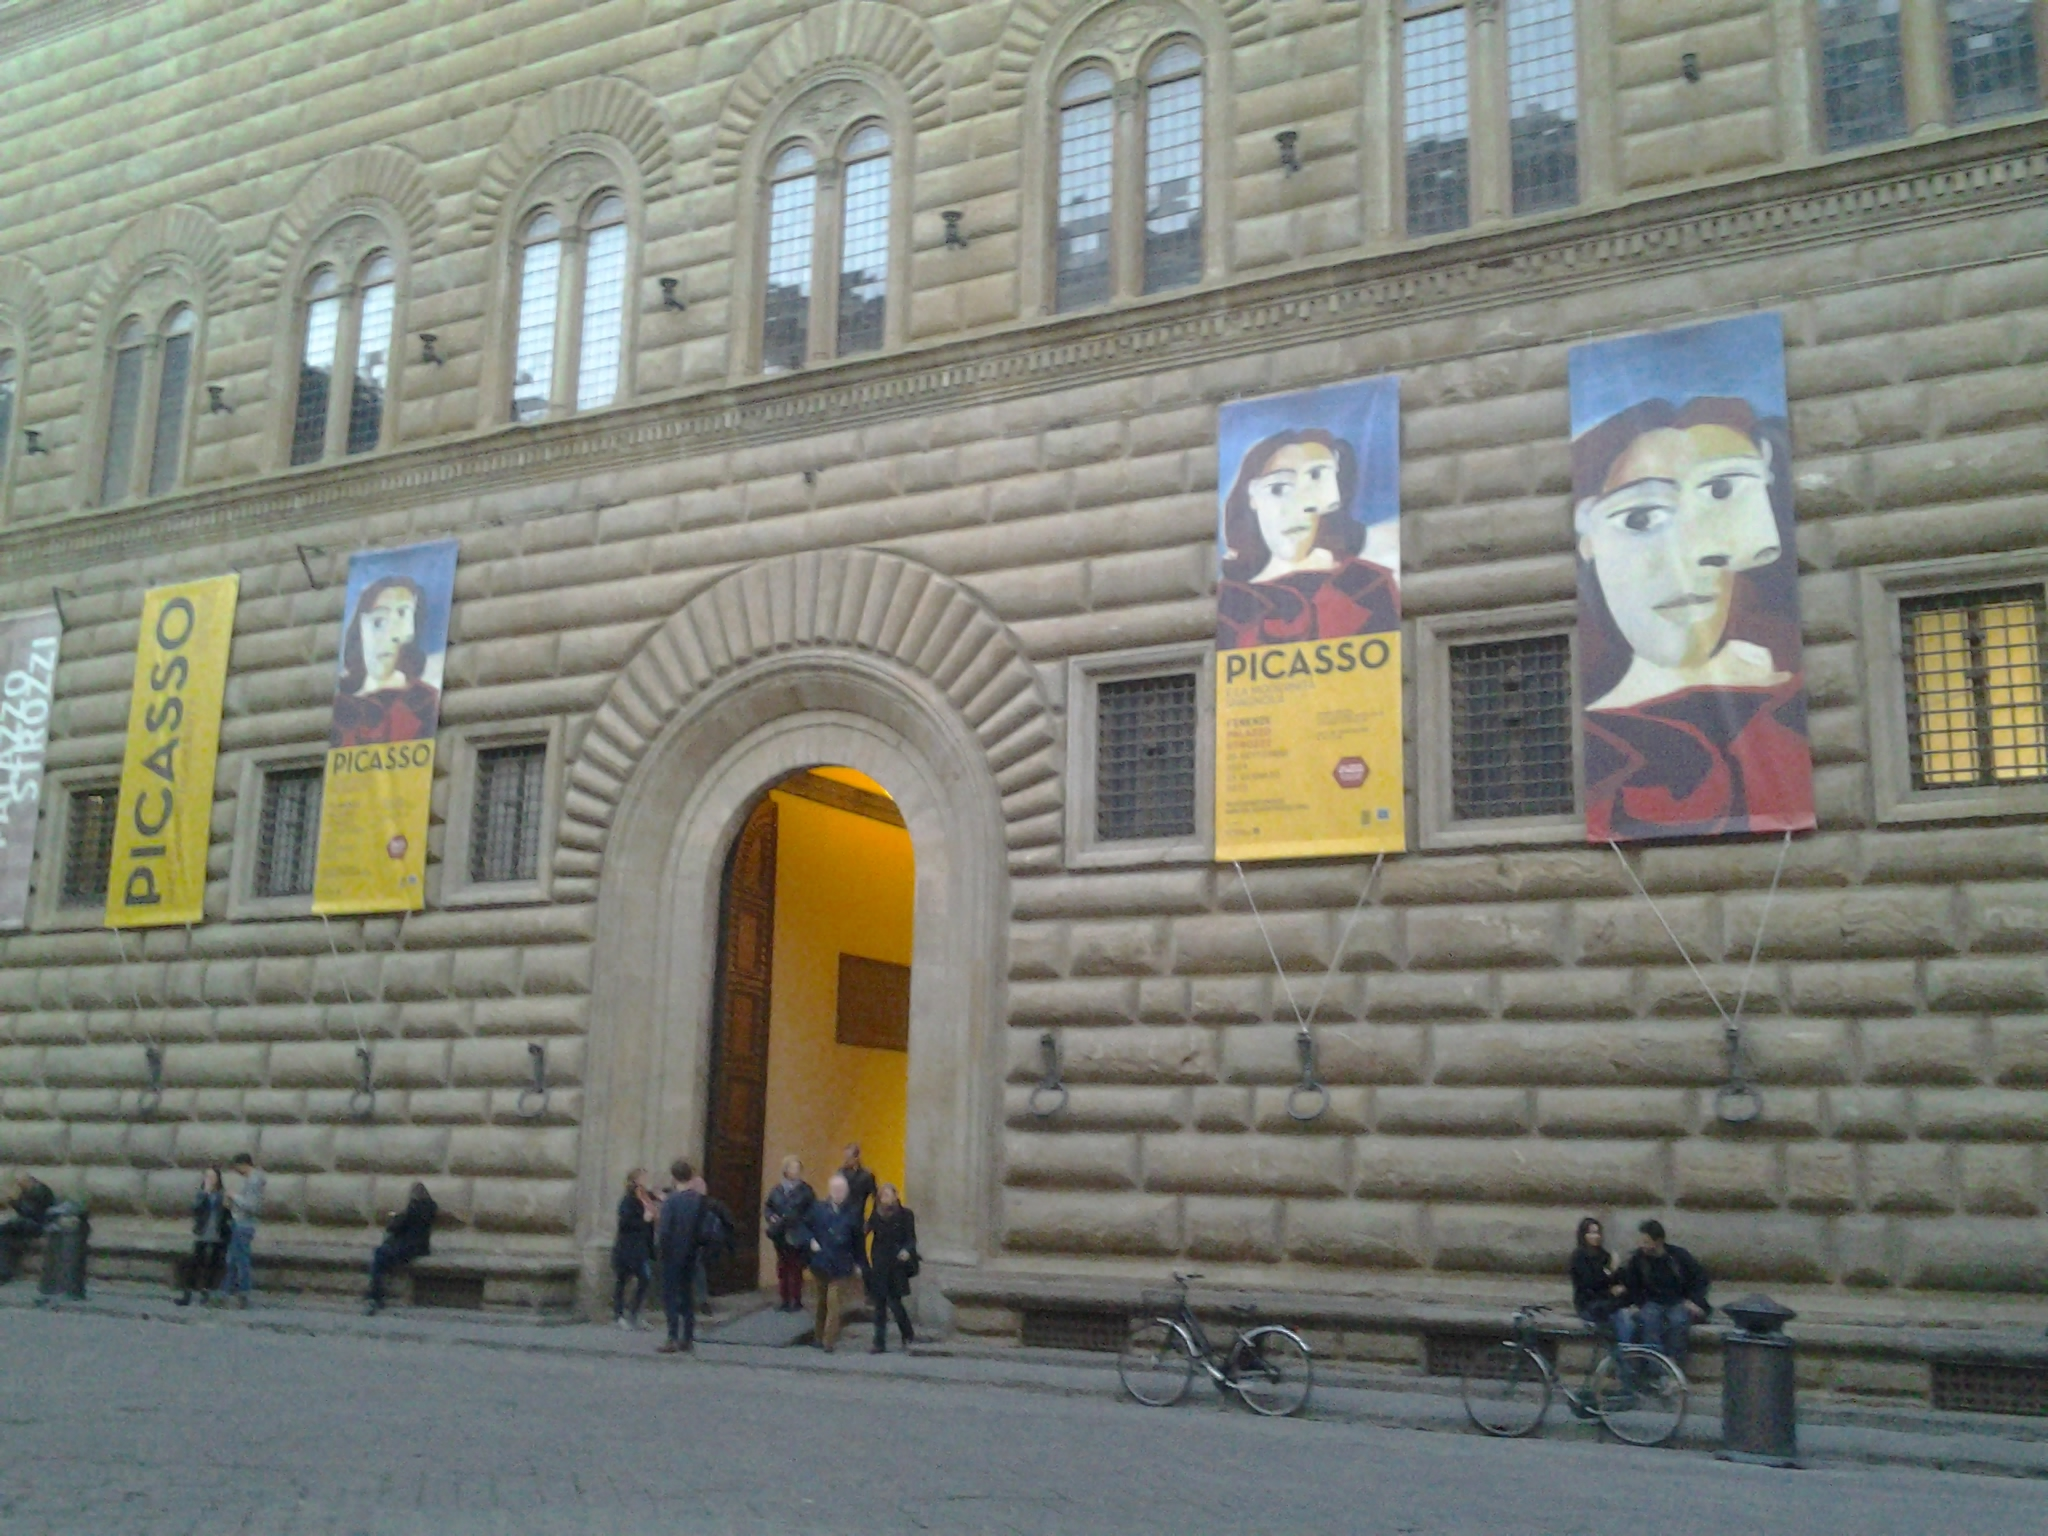 Mostra Picasso Firenze